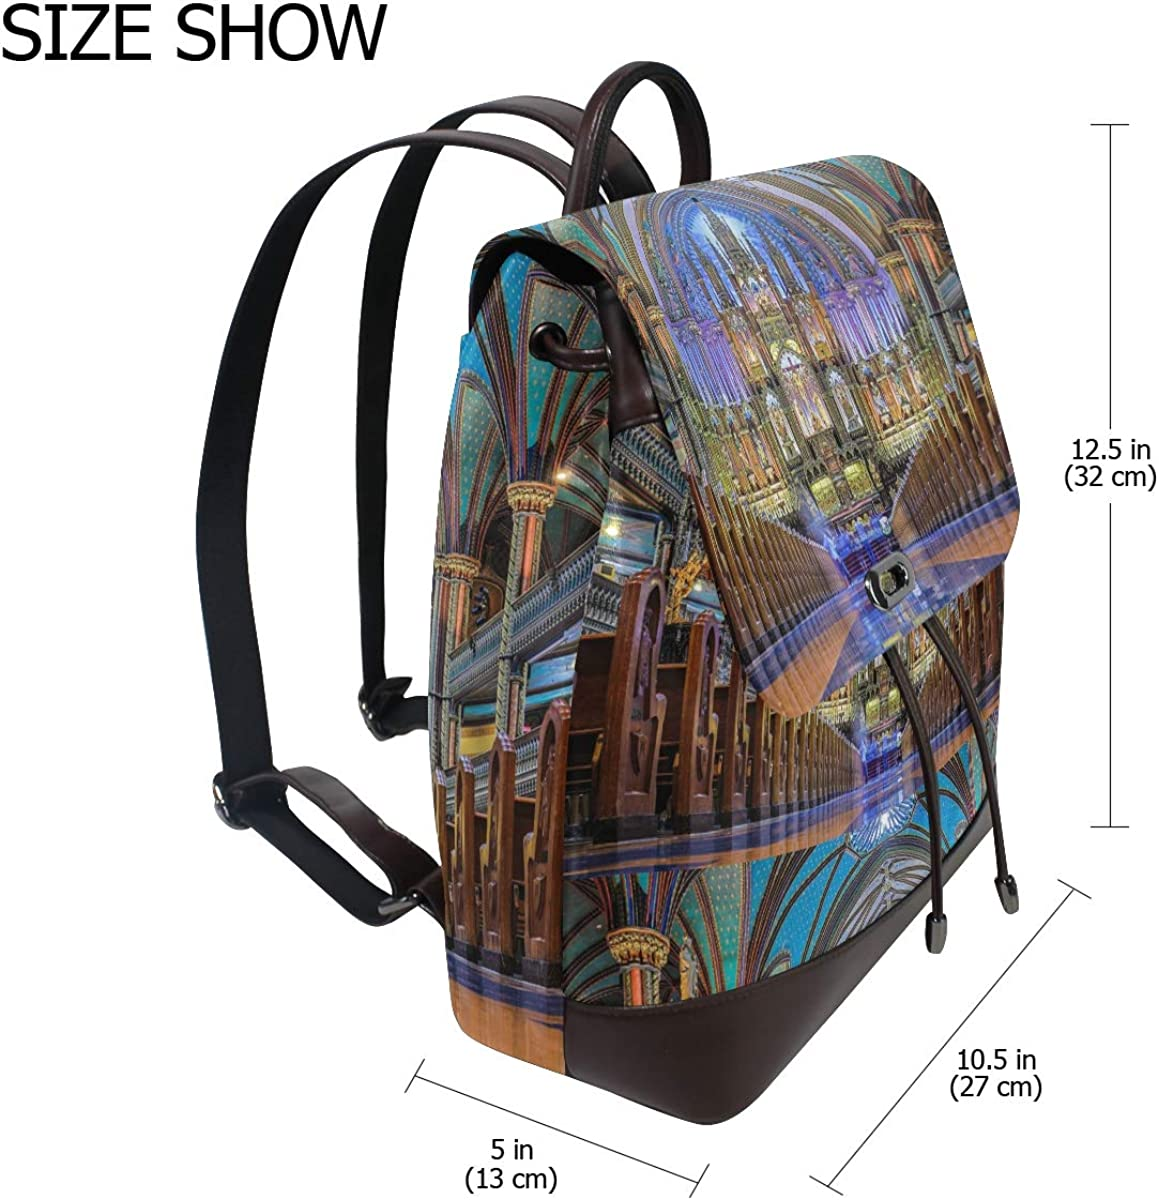 PU Leather Shoulder Bag,Notre Dame De Paris Backpack,Portable Travel School Rucksack,Satchel with Top Handle